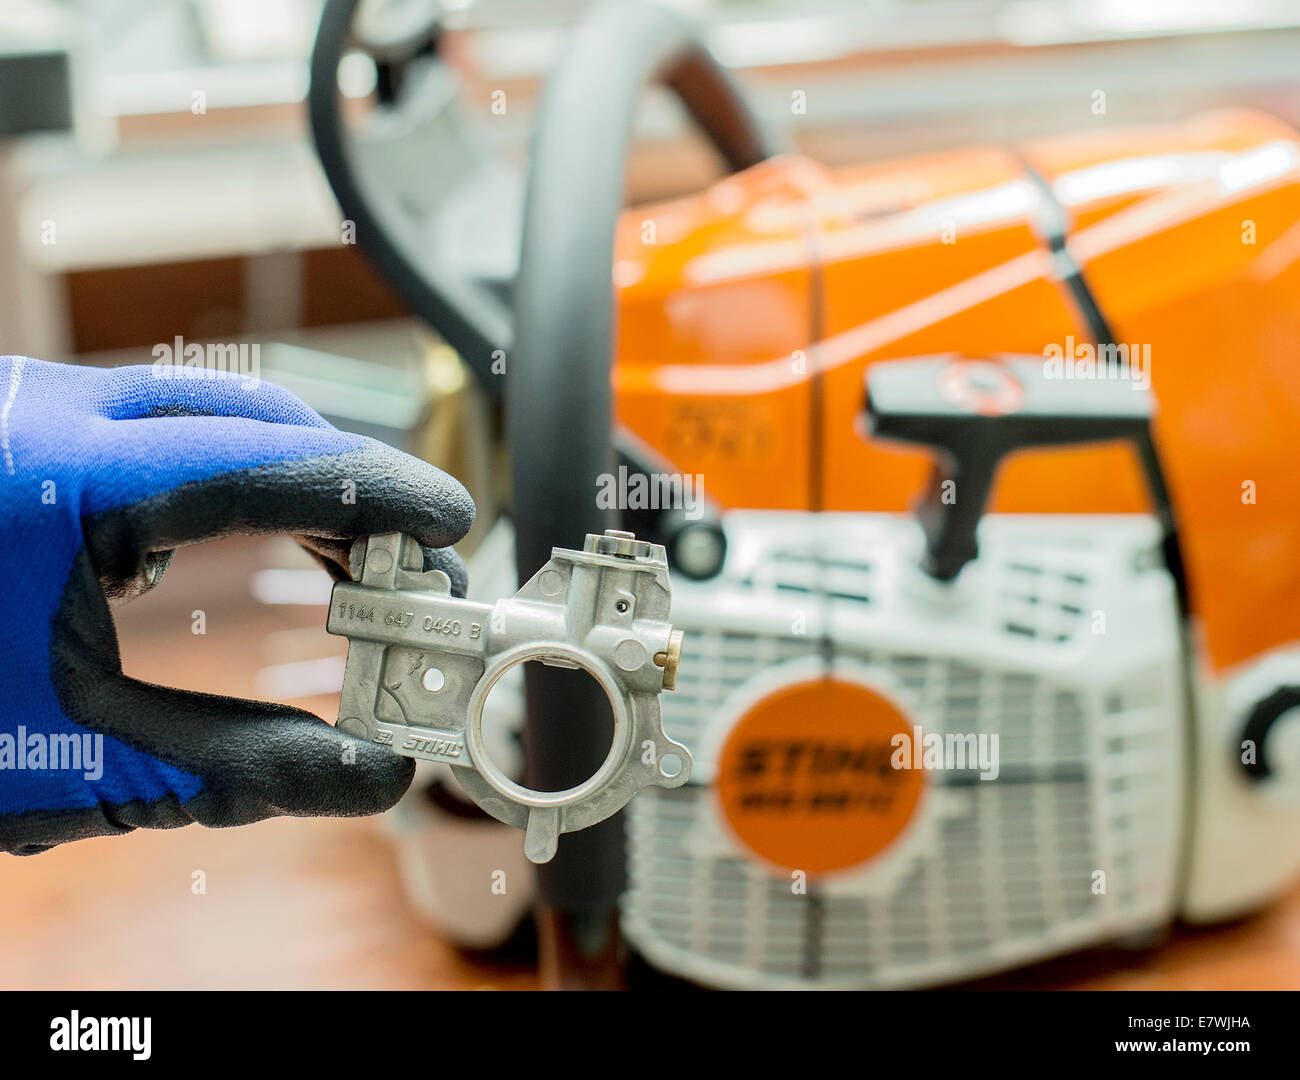 Waiblingen germany 24th sep 2014 an employee of chainsaw an employee of chainsaw producer stihl shows a pump to put sticking oil onto the chain of a chainsaw in waiblingen germany 24 september 2014 keyboard keysfo Image collections